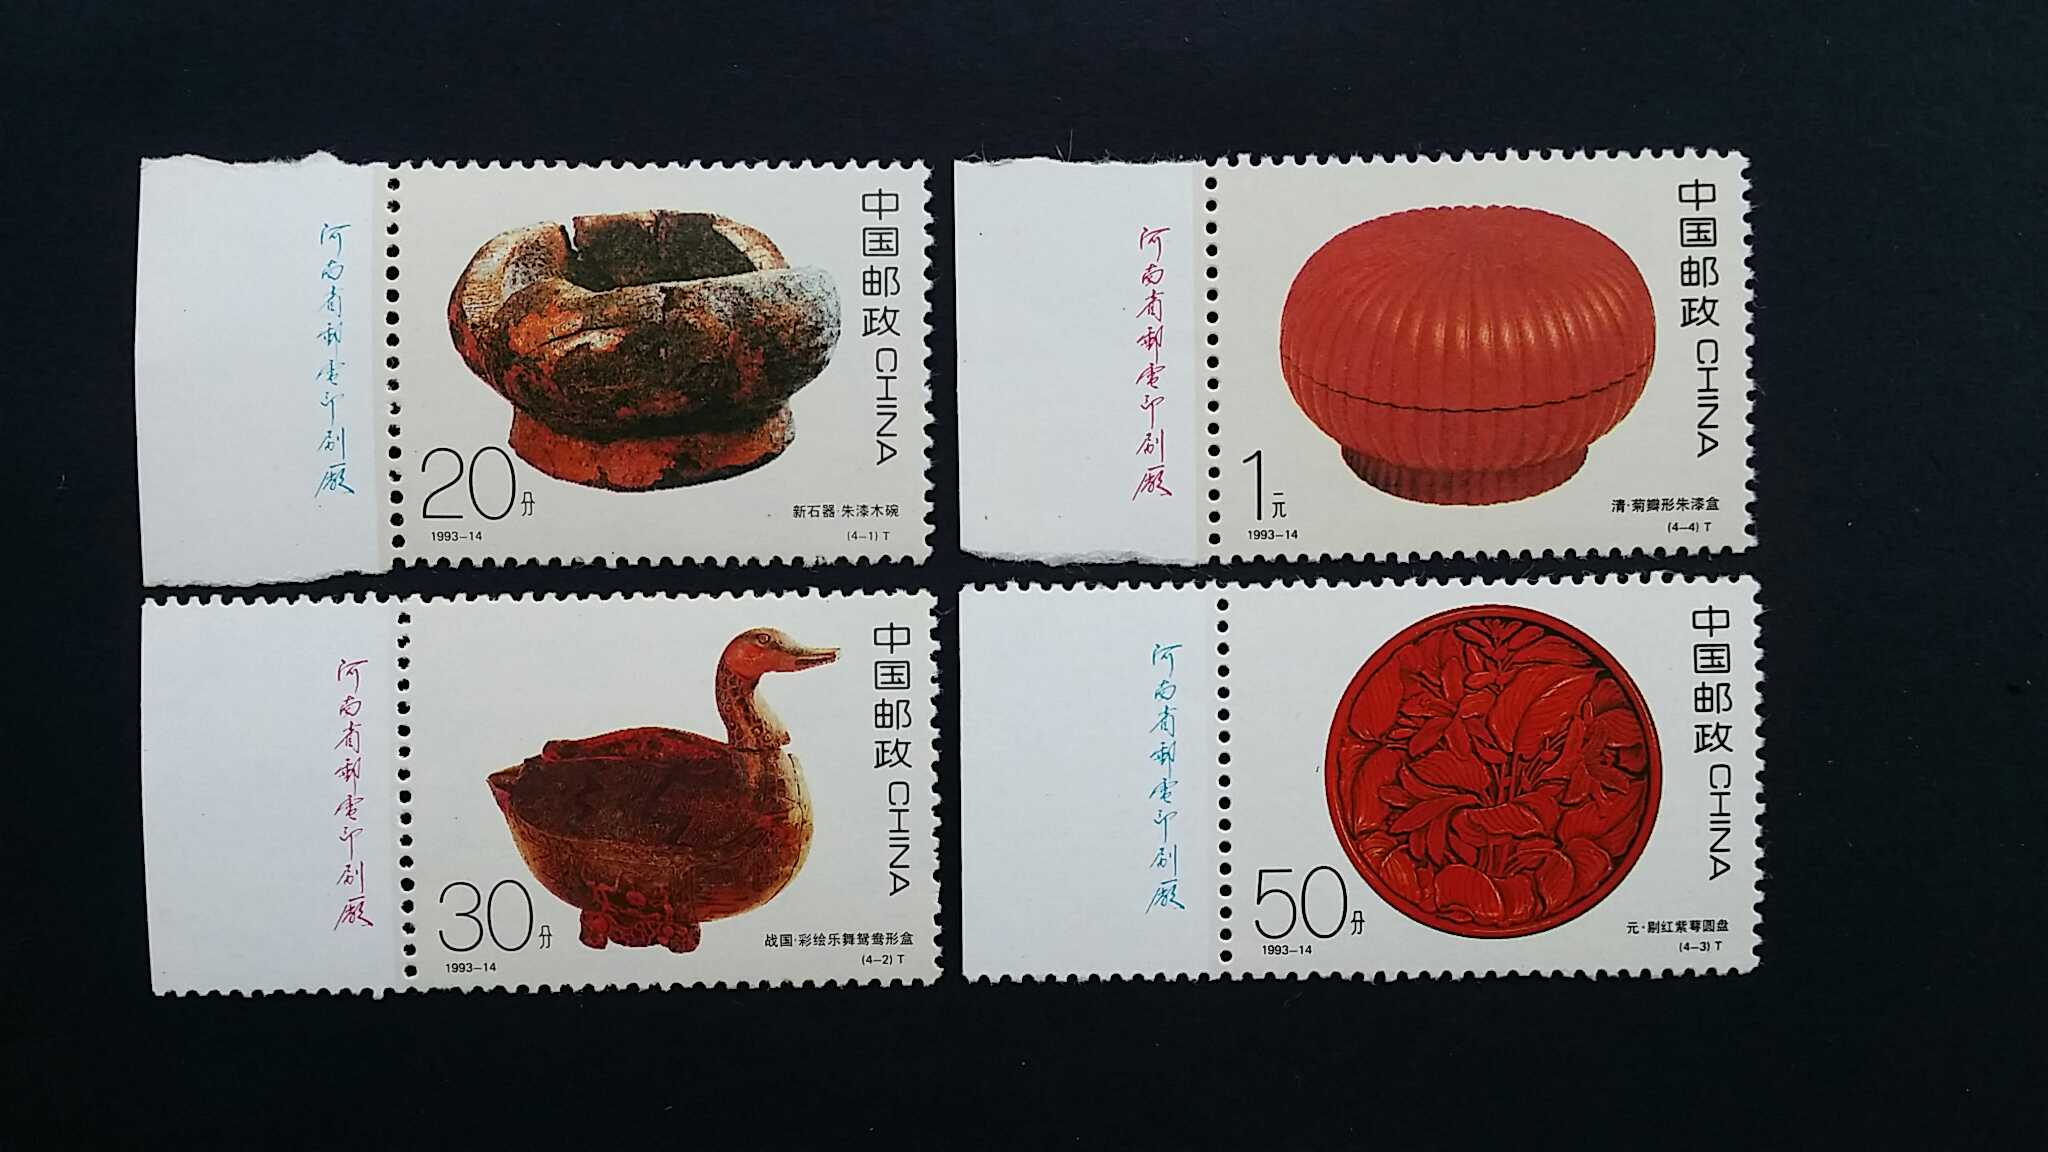 Stamps 1993 14 ancient lacquerware factory name family food stamps collection brand popular old shop